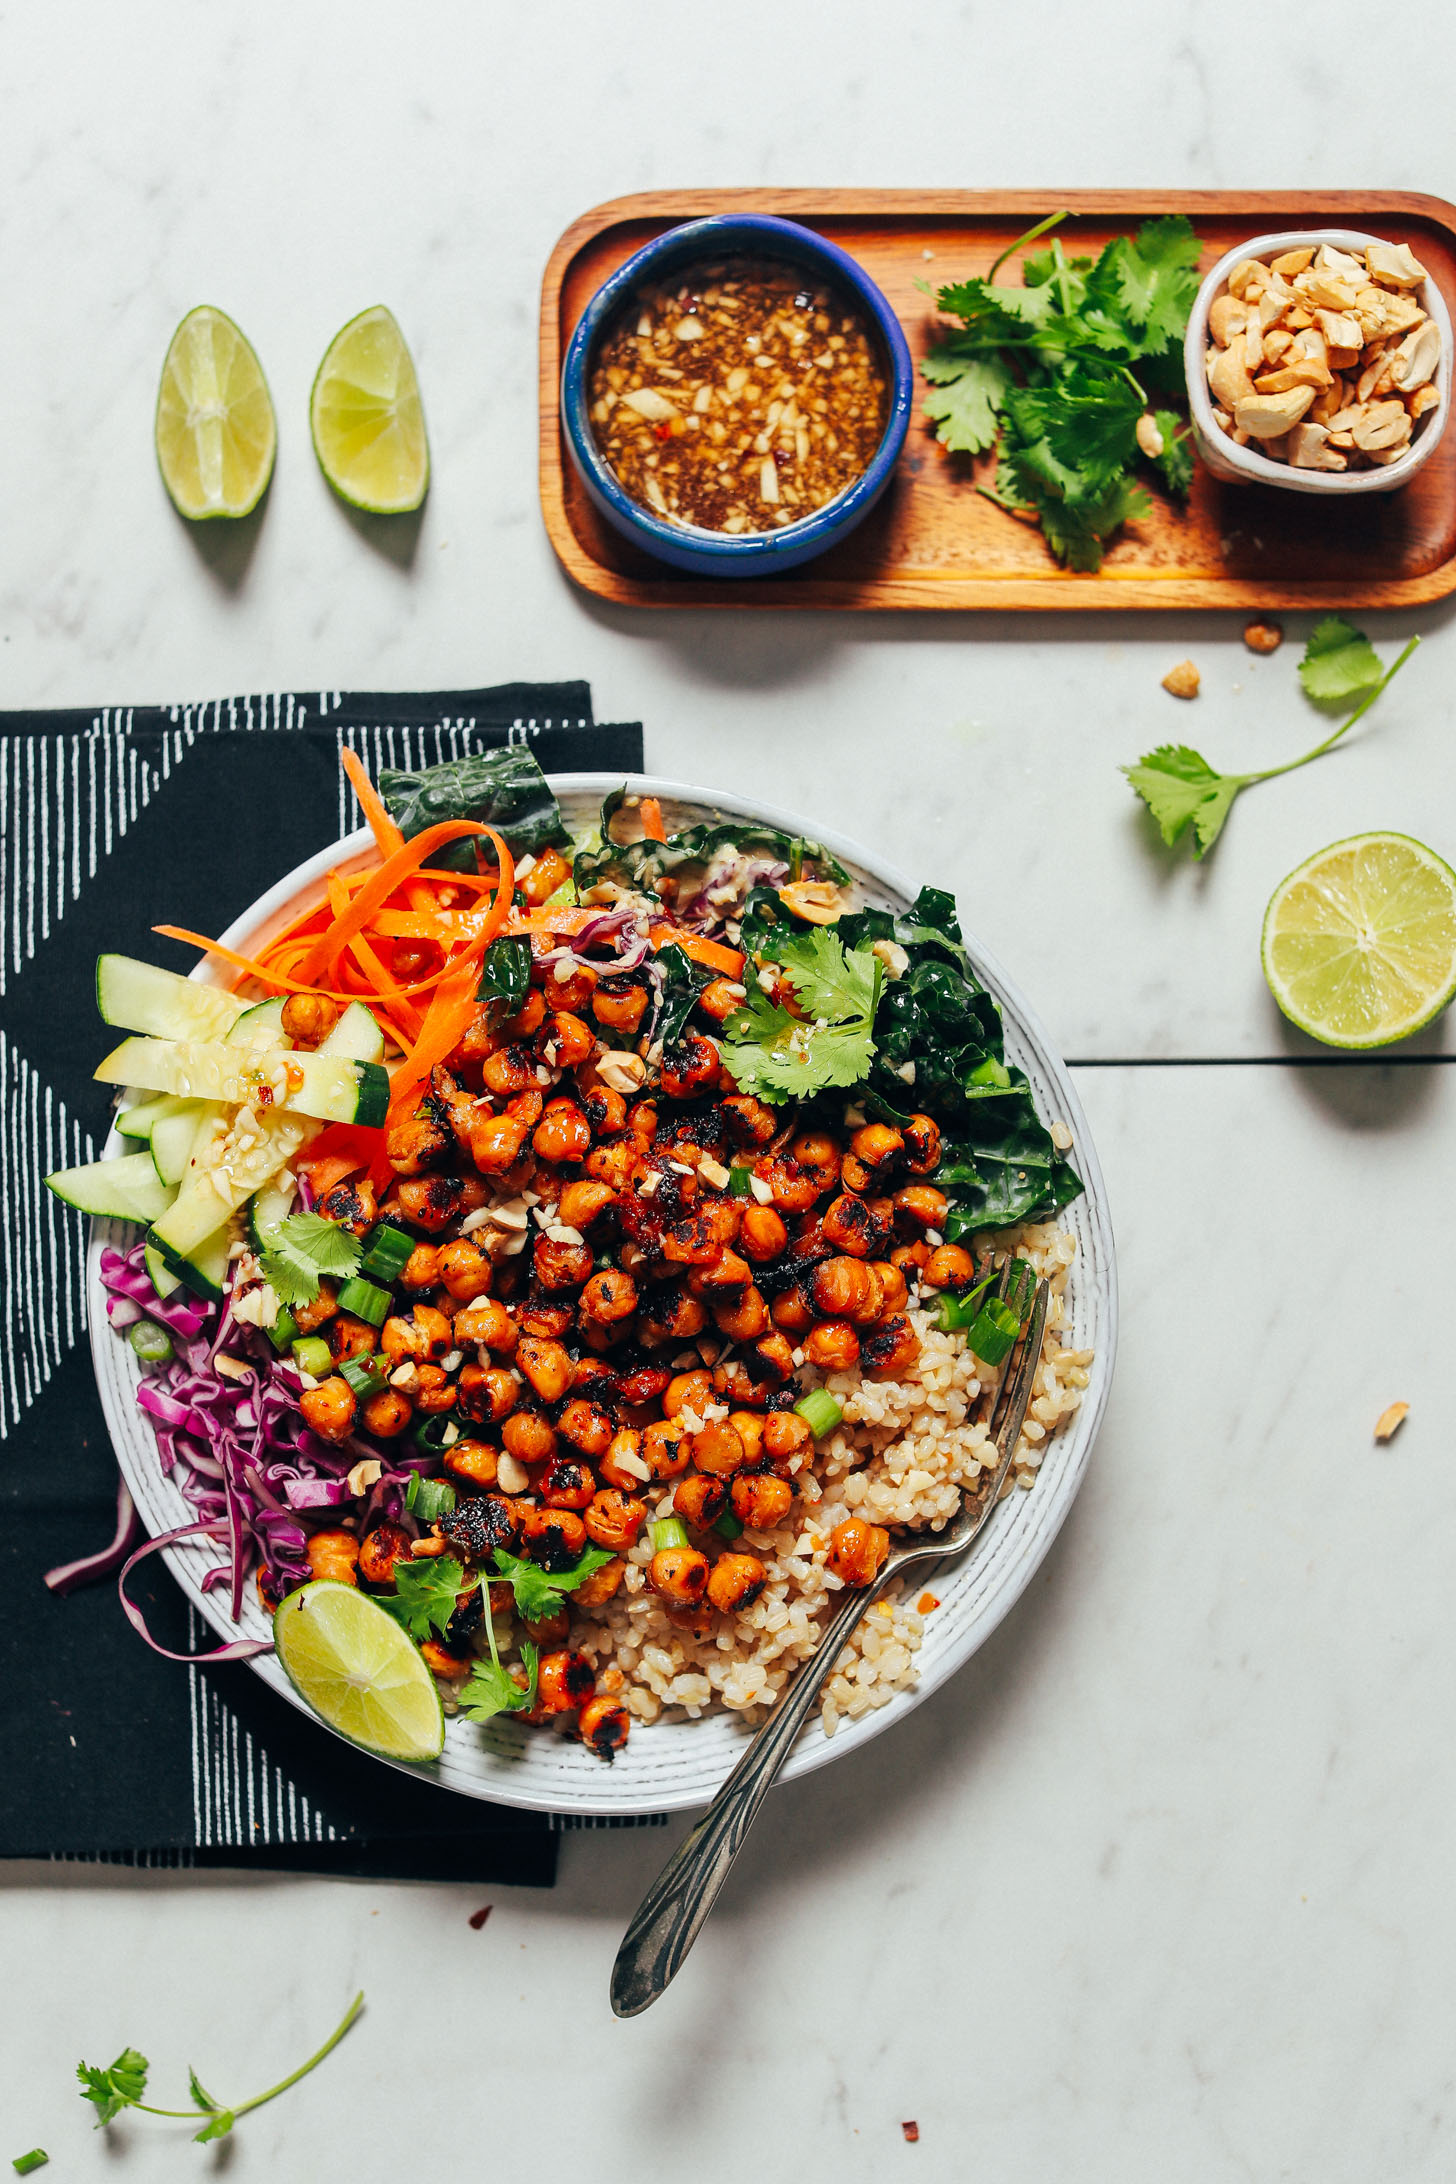 Crispy Miso Chickpea Bowl beside serving ingredients including cilantro, dressing, cashews, and lime